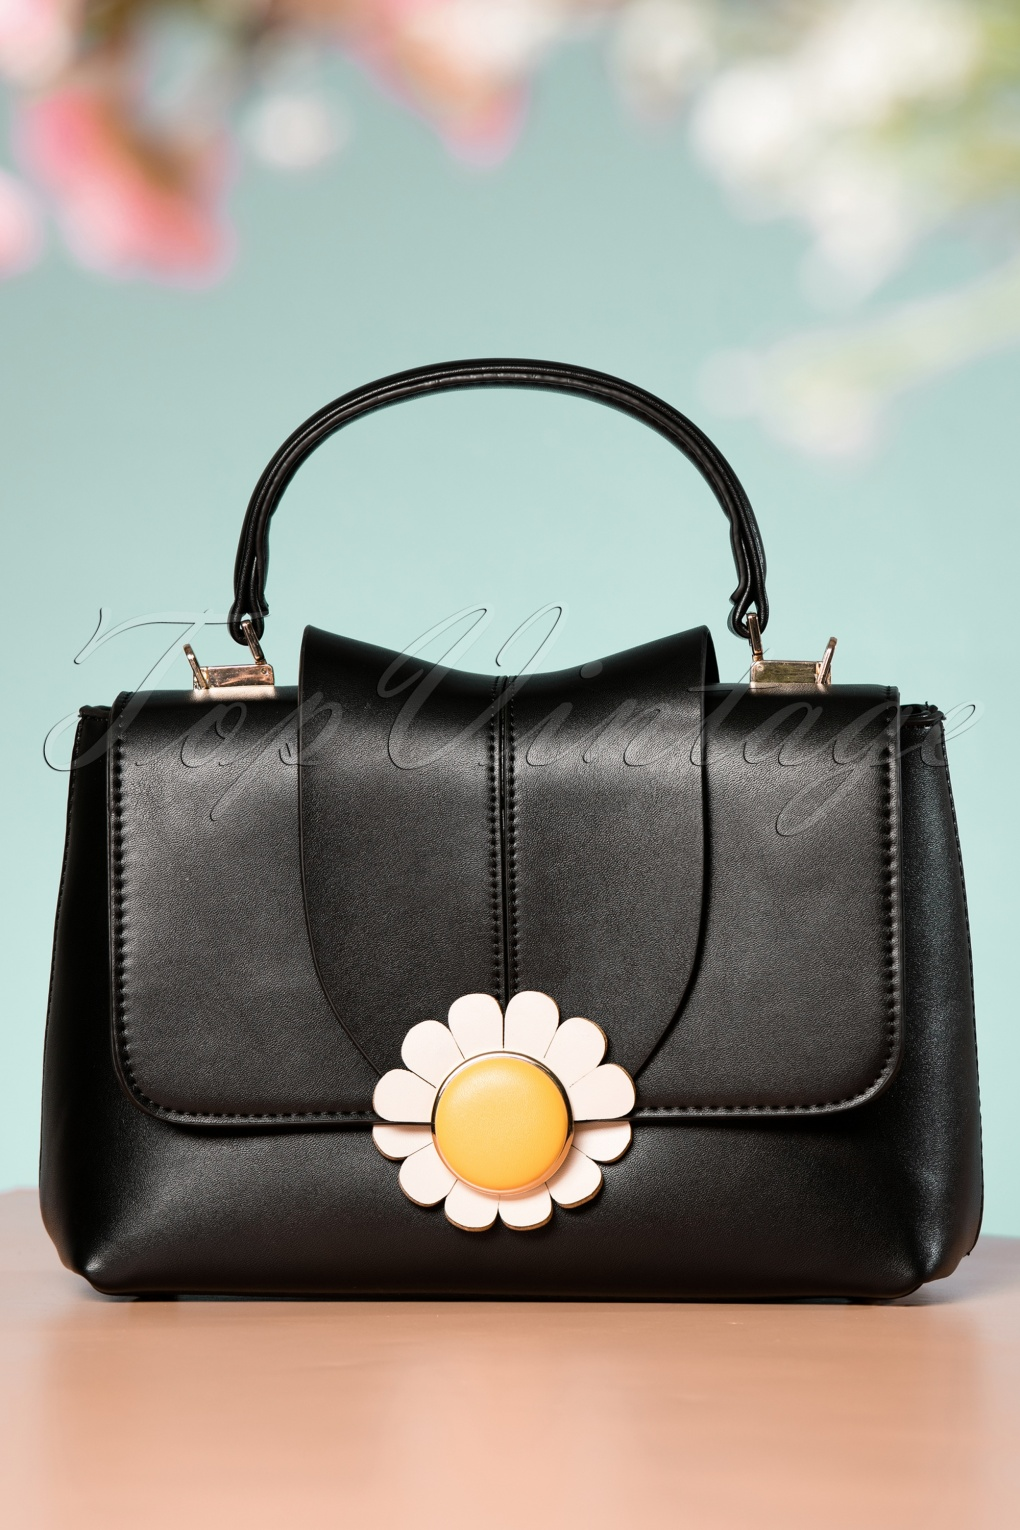 Vintage & Retro Handbags, Purses, Wallets, Bags 60s Daisy Handbag in Black £44.36 AT vintagedancer.com